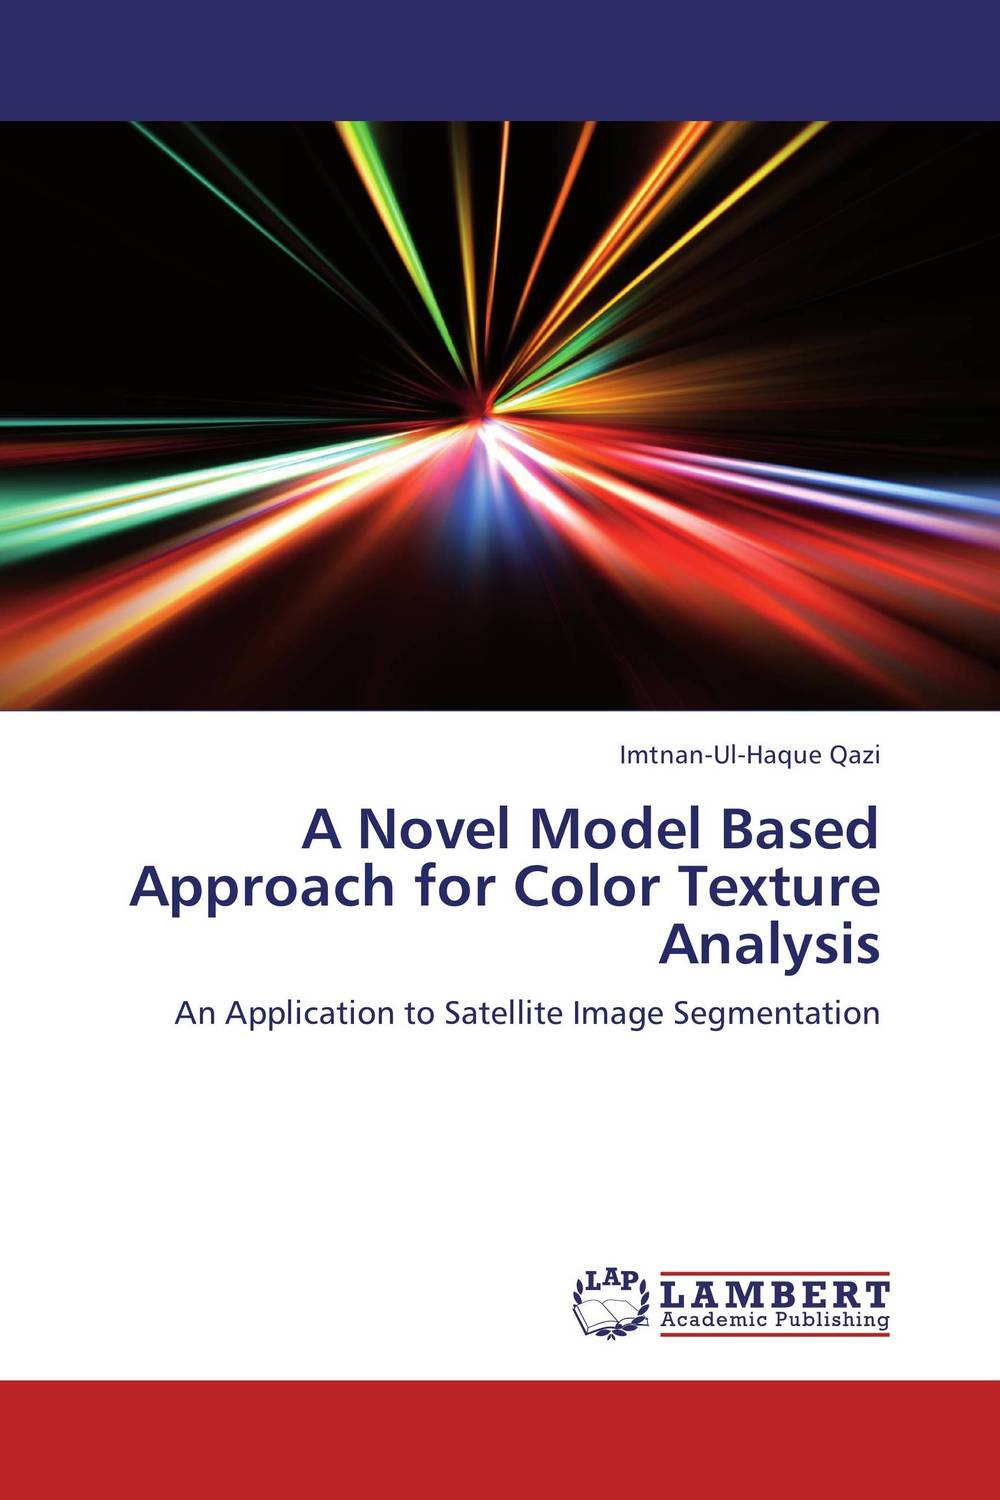 купить A Novel Model Based Approach for Color Texture Analysis недорого